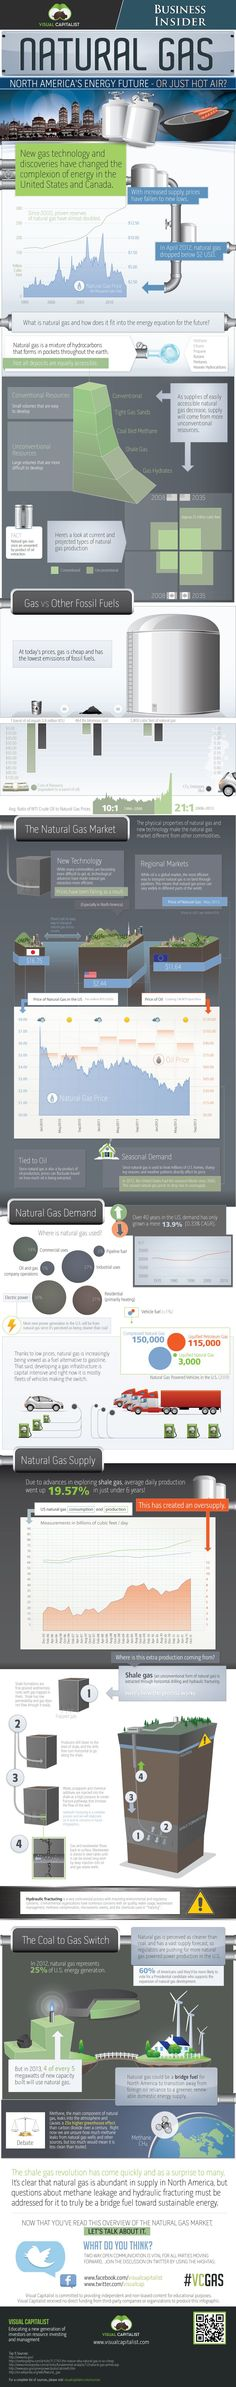 An Illustrated Guide To America's Natural Gas Future